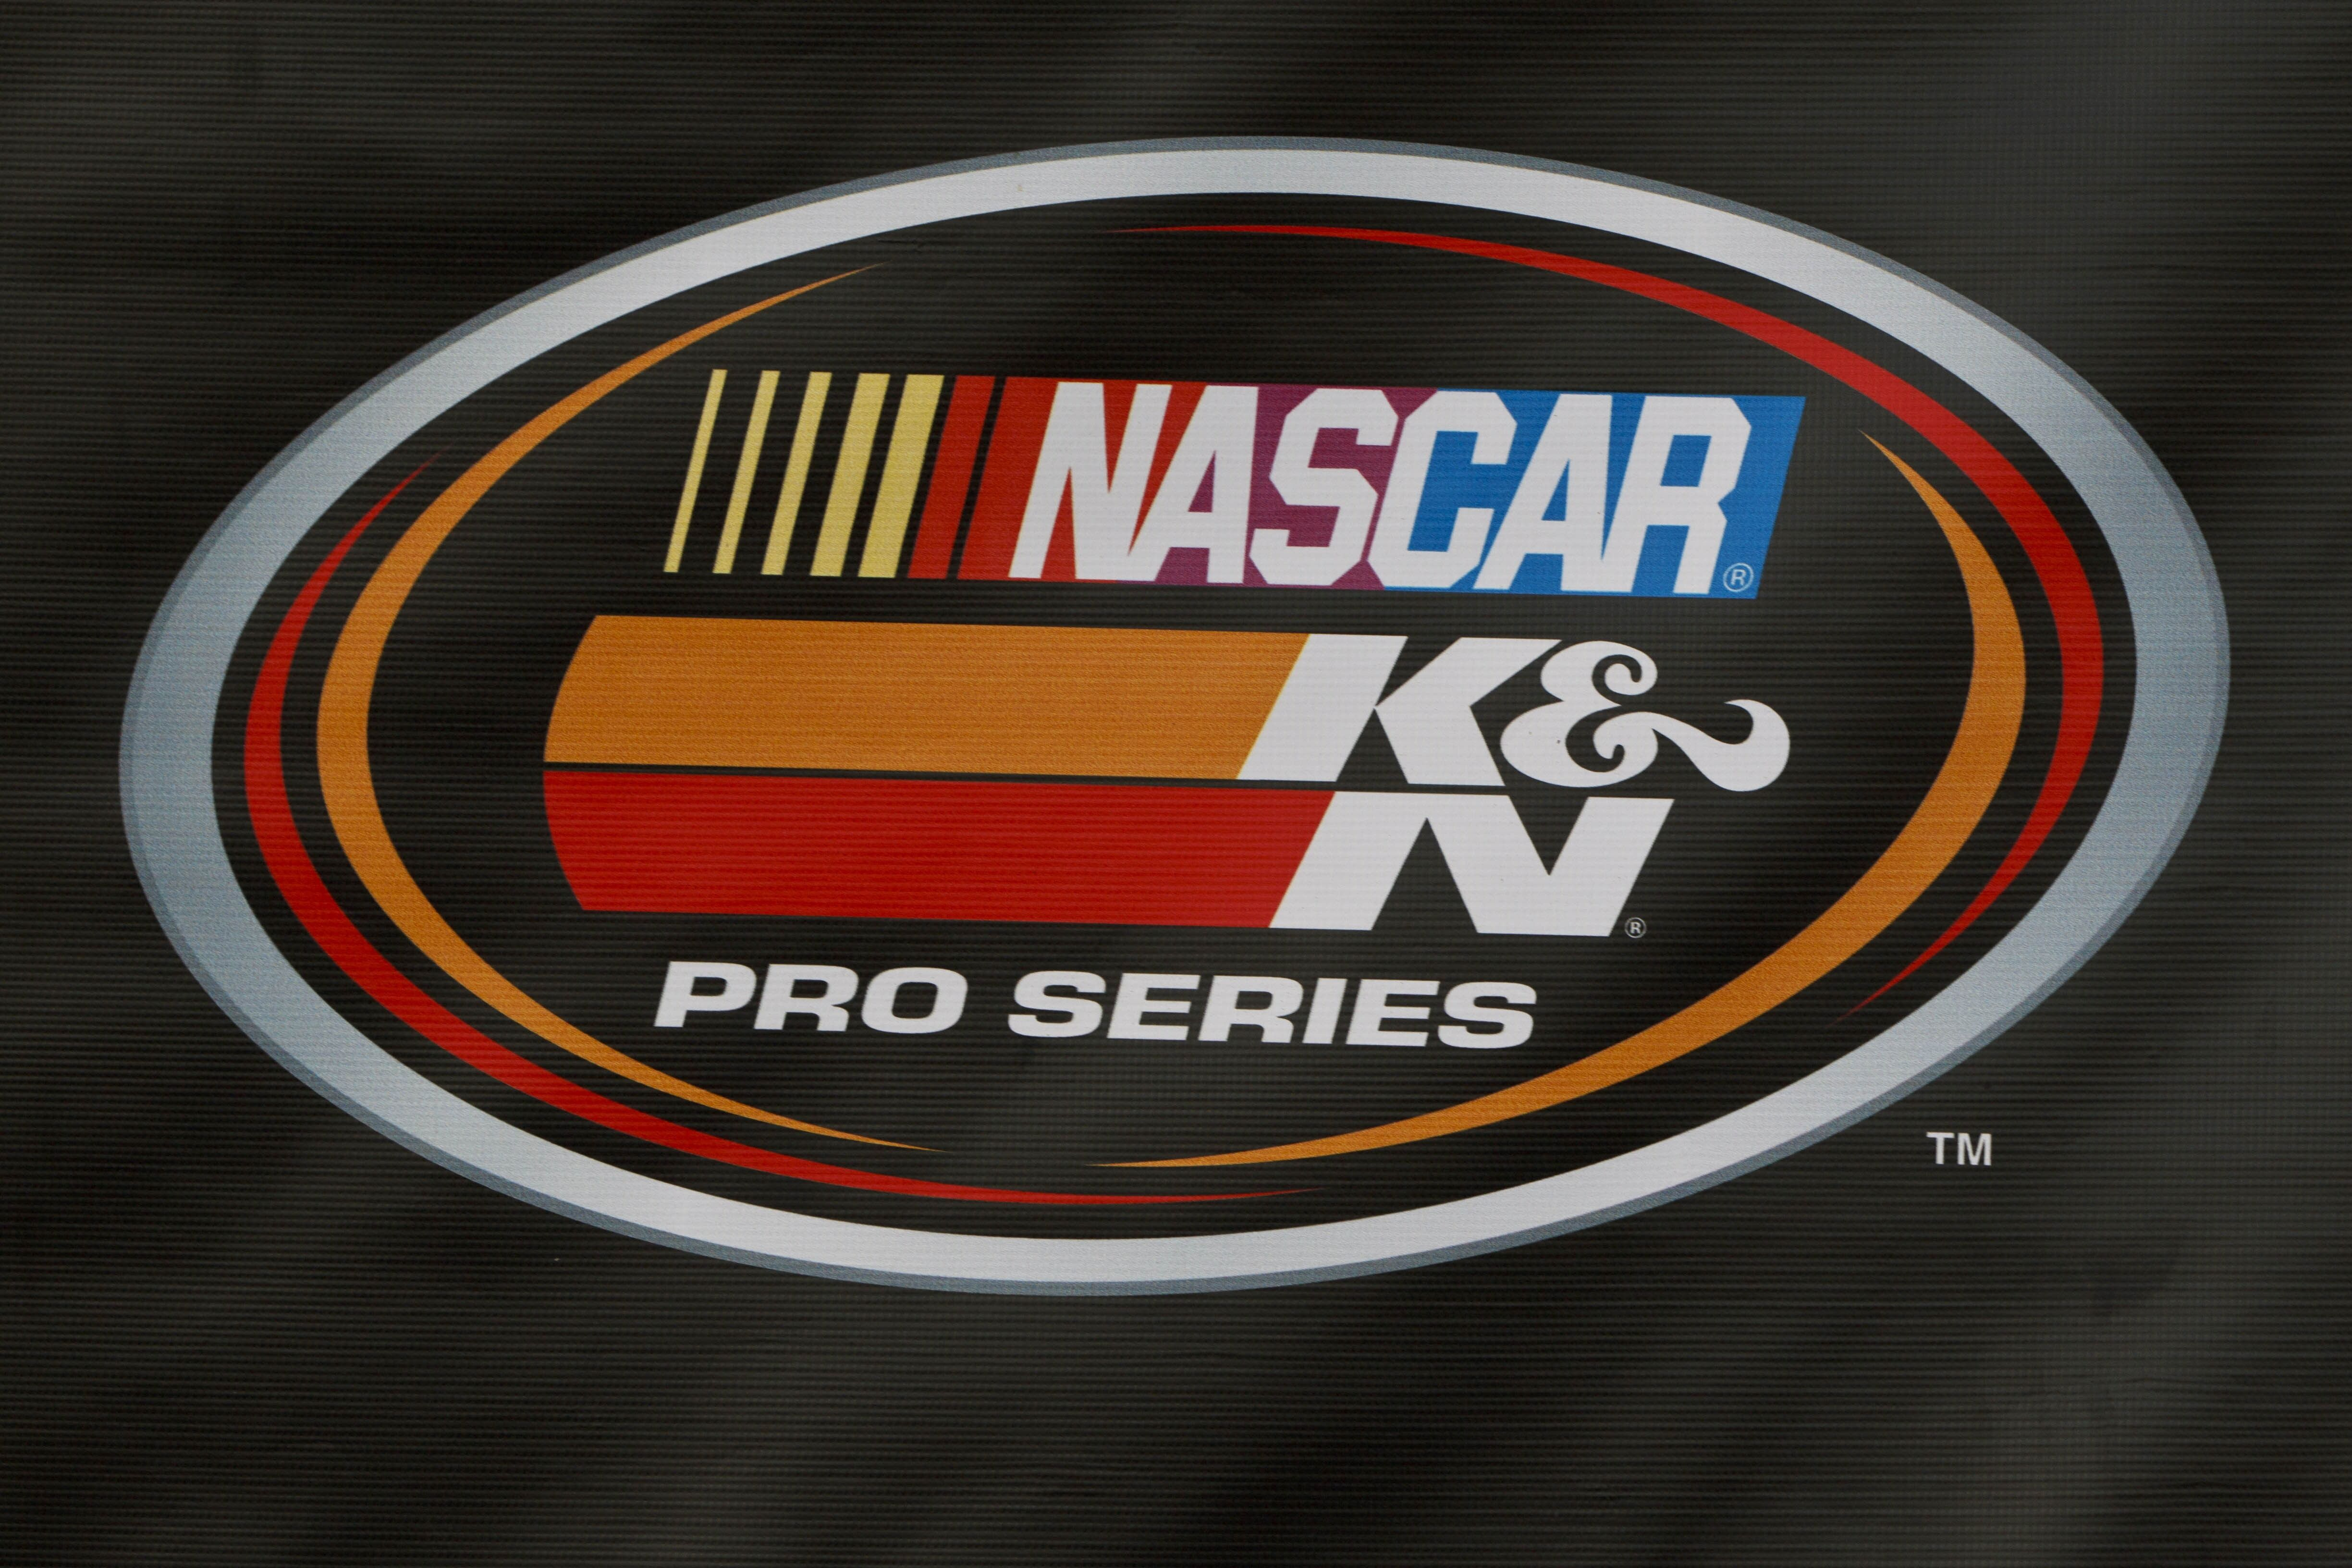 Nascar Updated Logos Rules In 2018 For Regional Touring